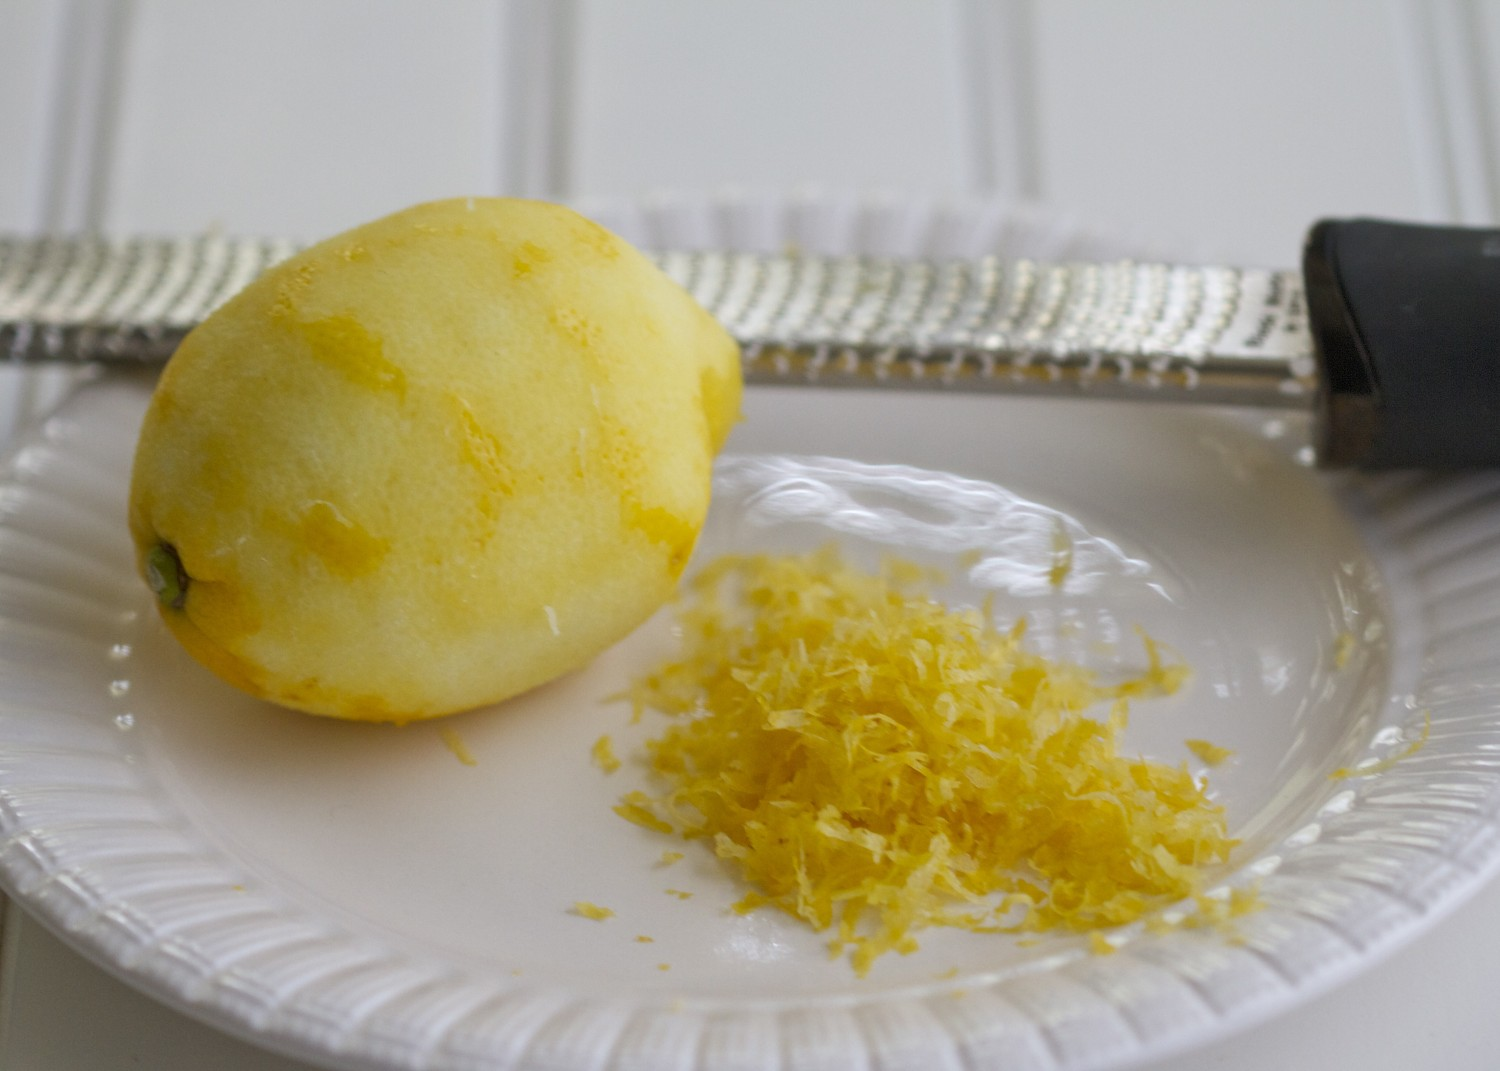 Grated Zest 1 Lemon